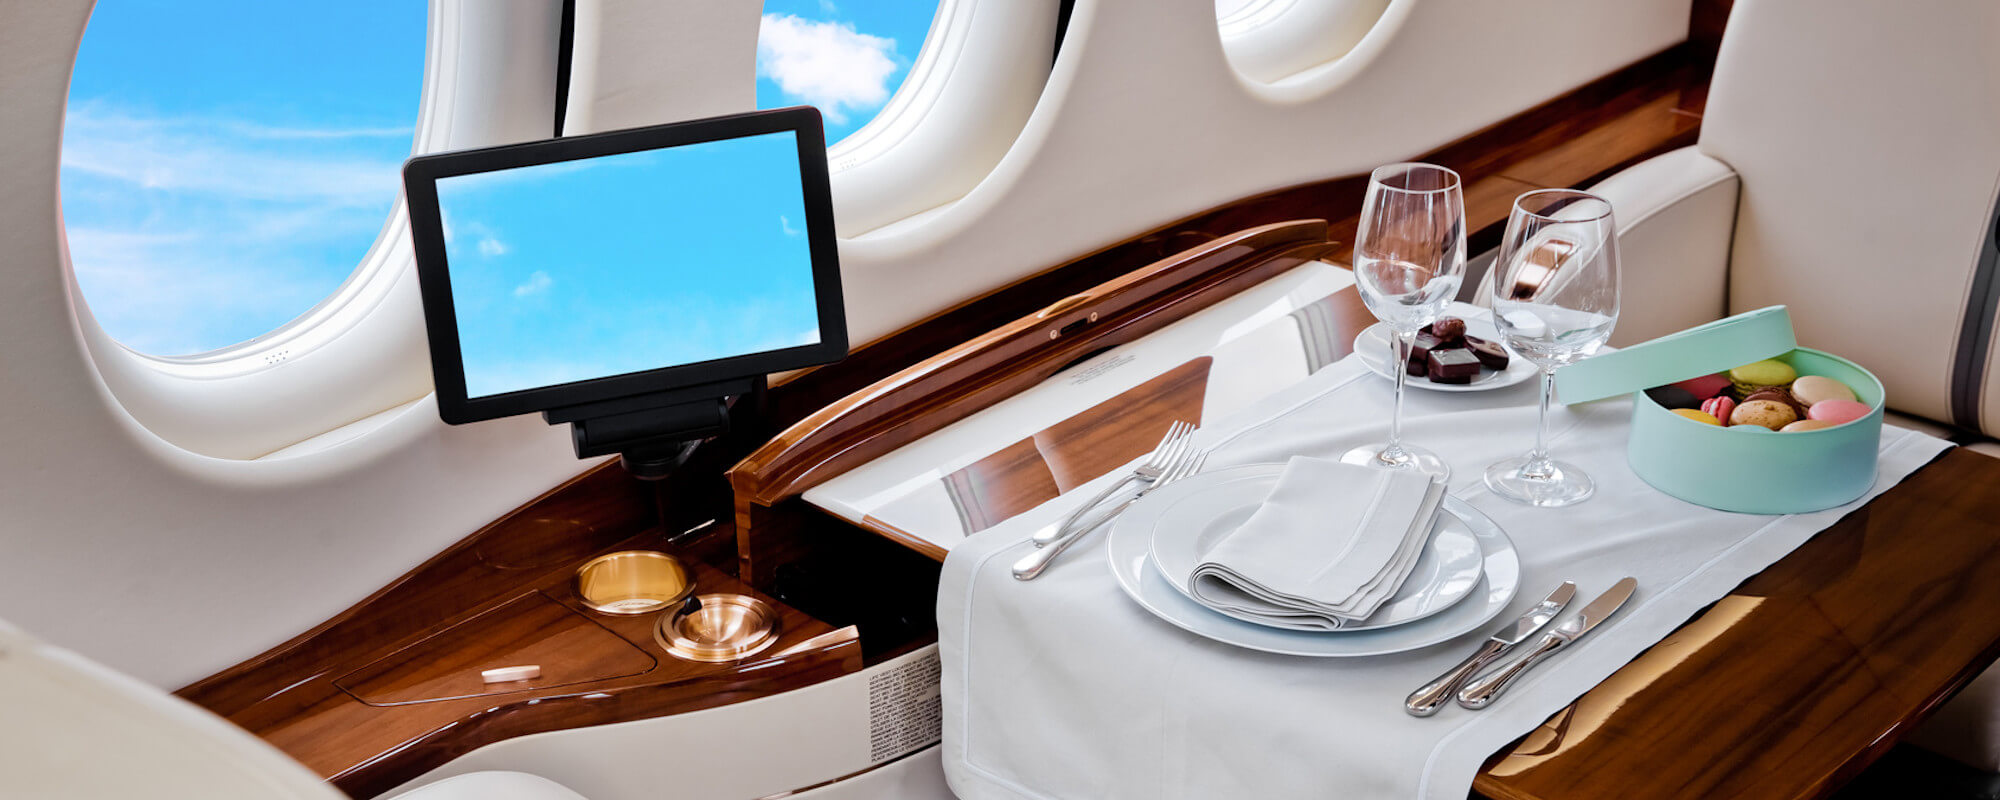 In-Flight Dining at 40,000 Feet